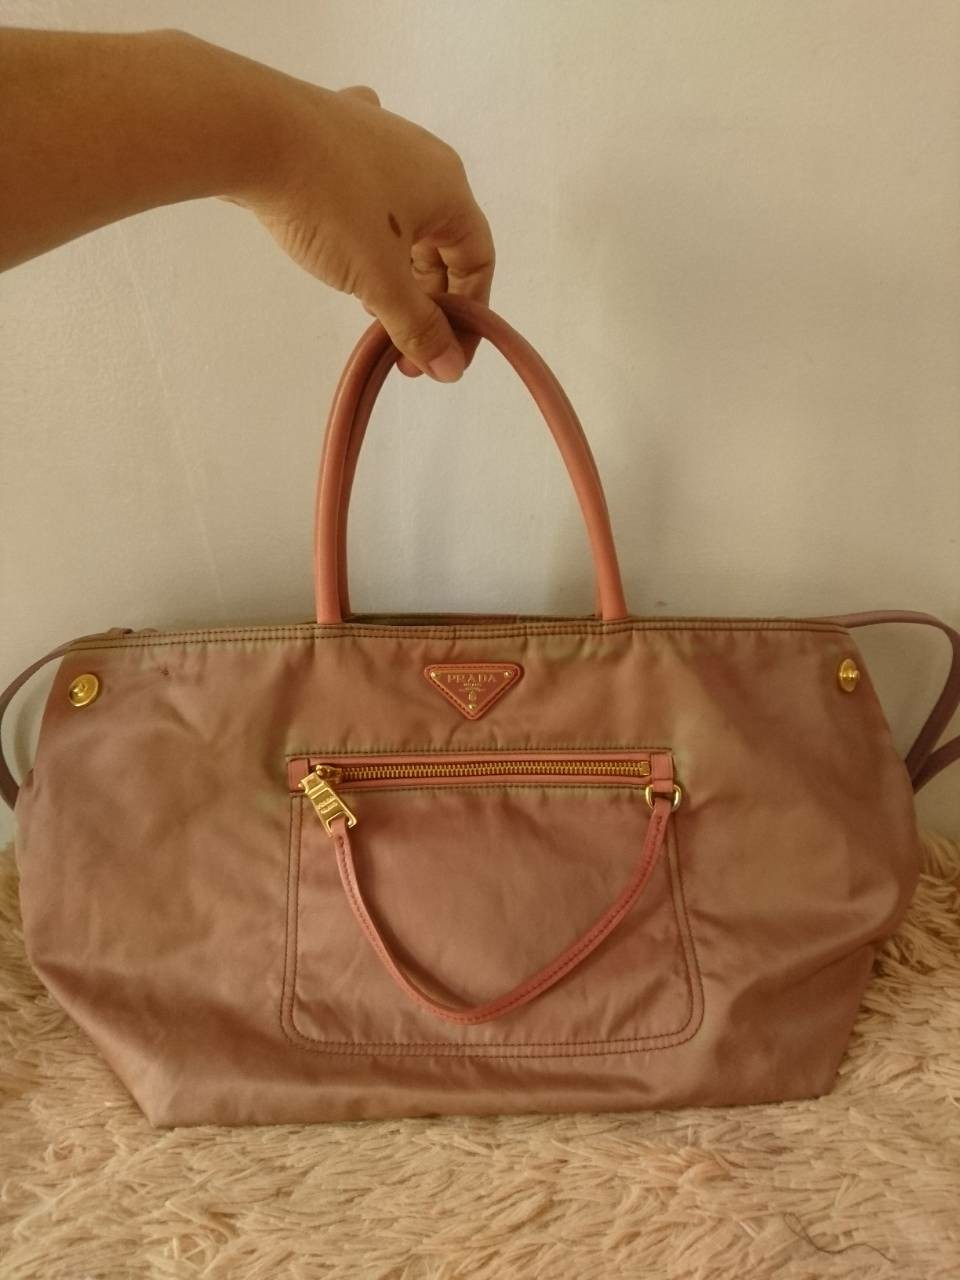 1cfd2dd94e4e Selling authentic prada tessuto tote